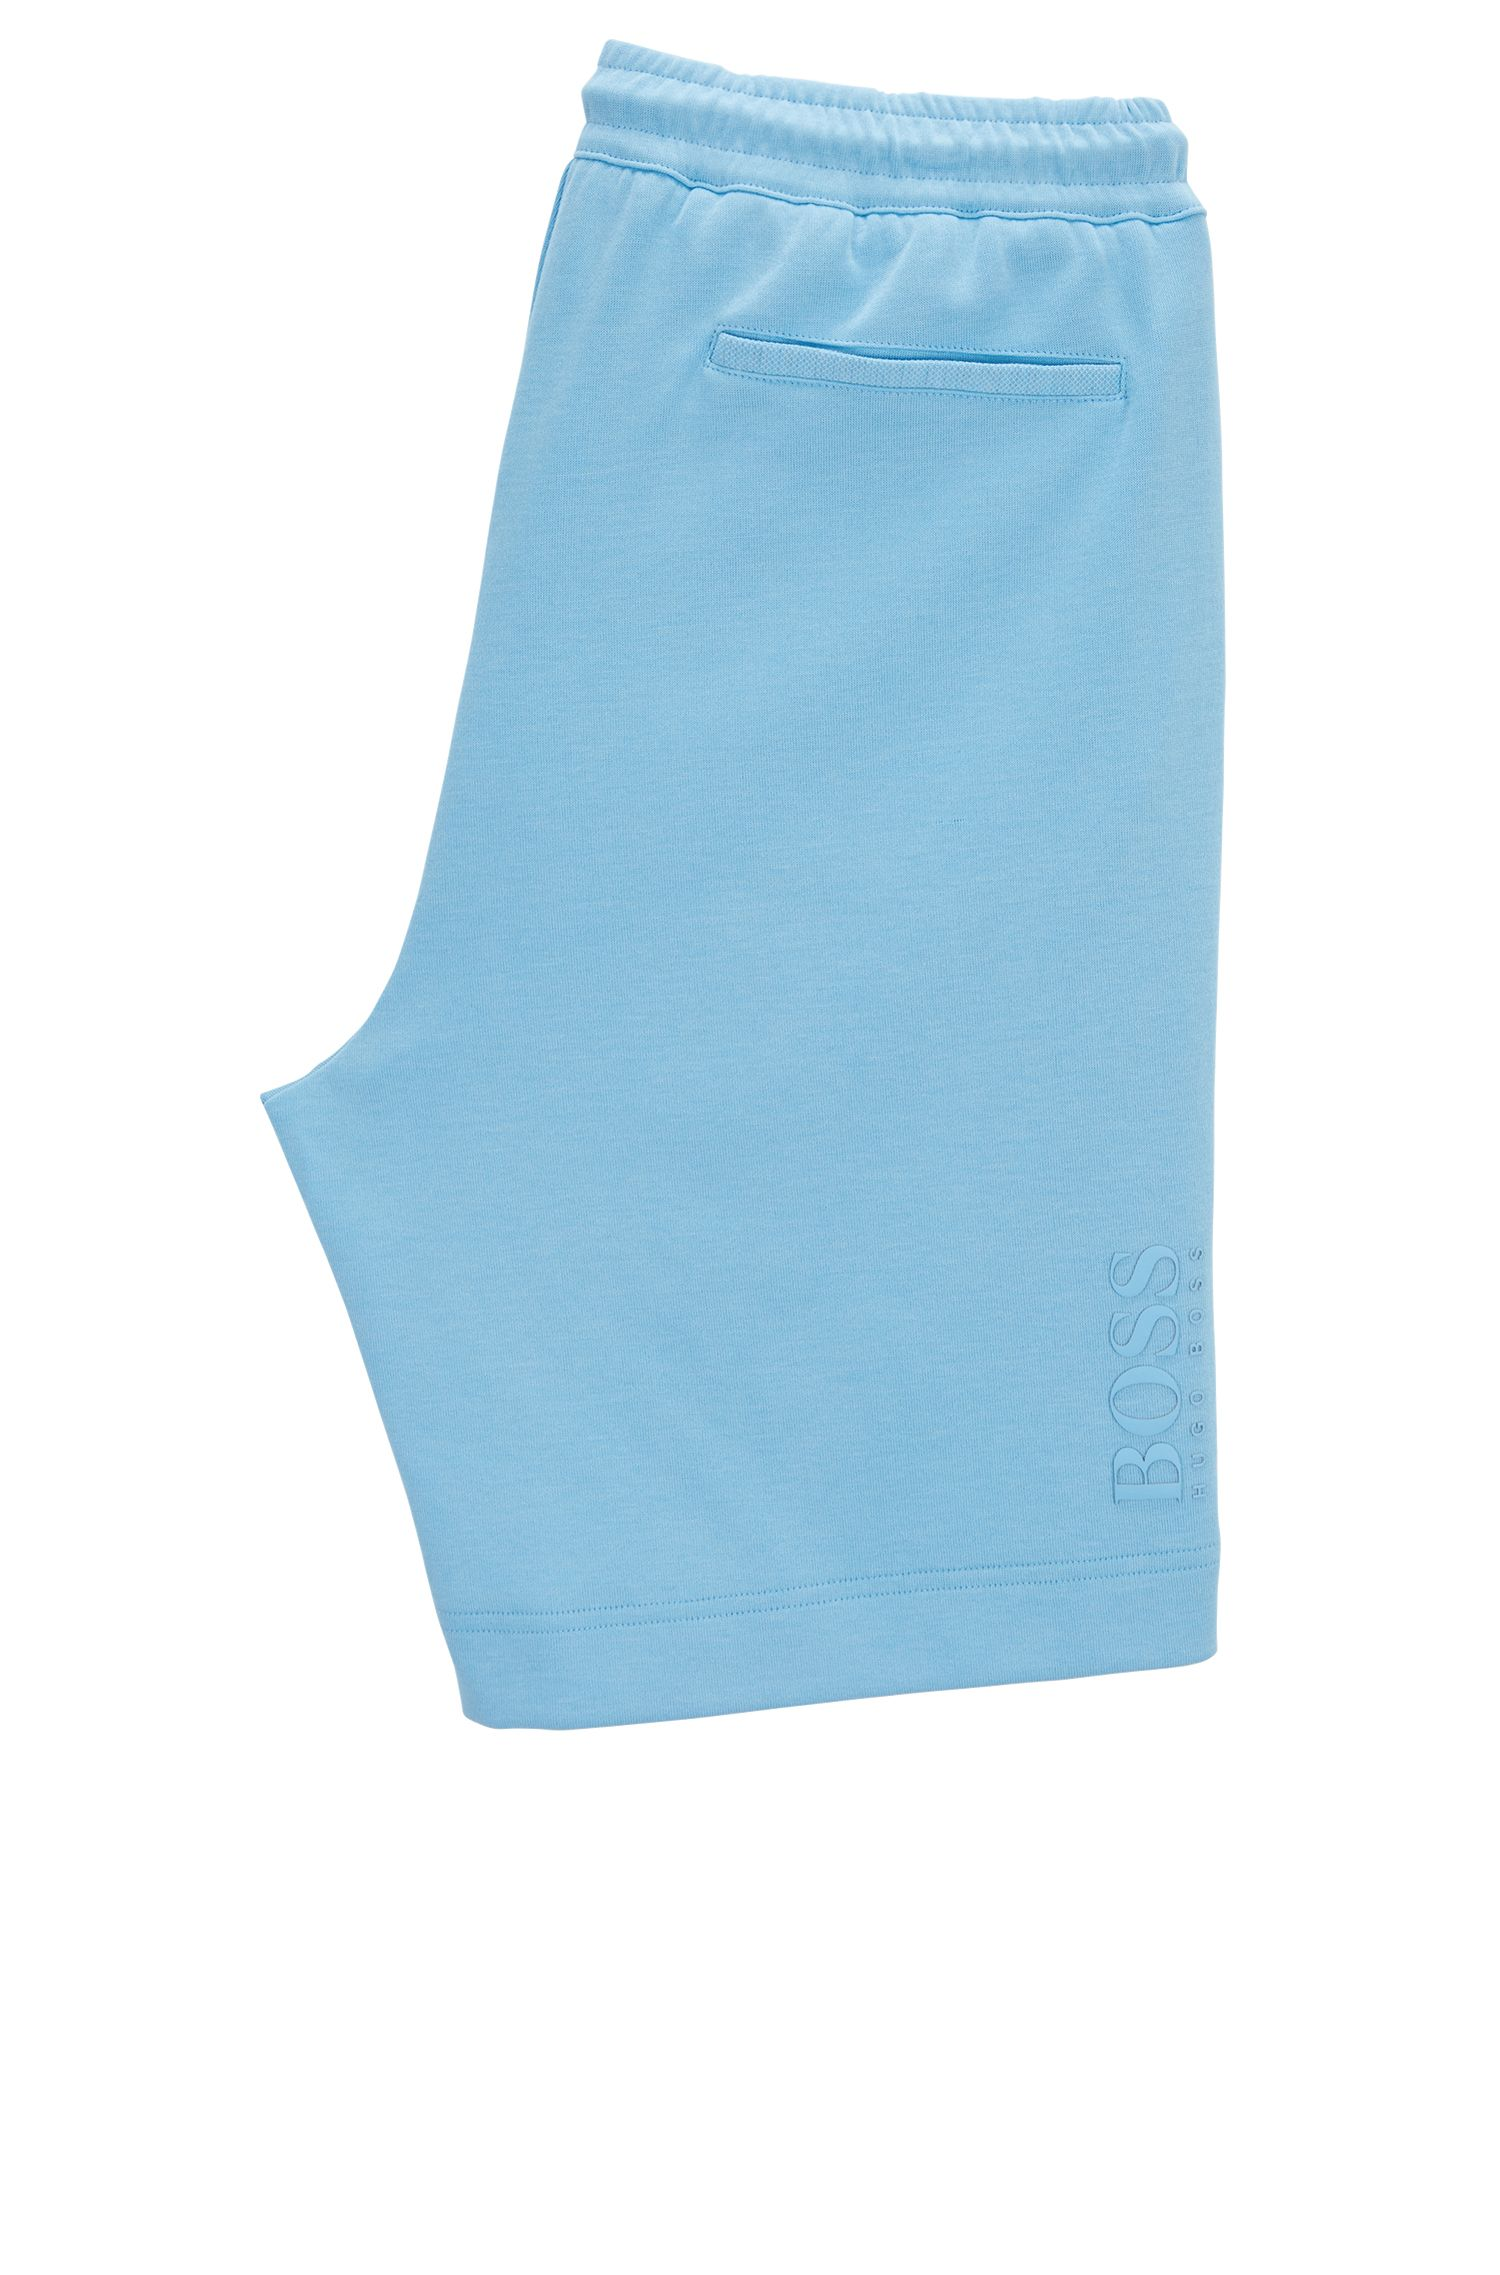 Jogging shorts in a cotton blend